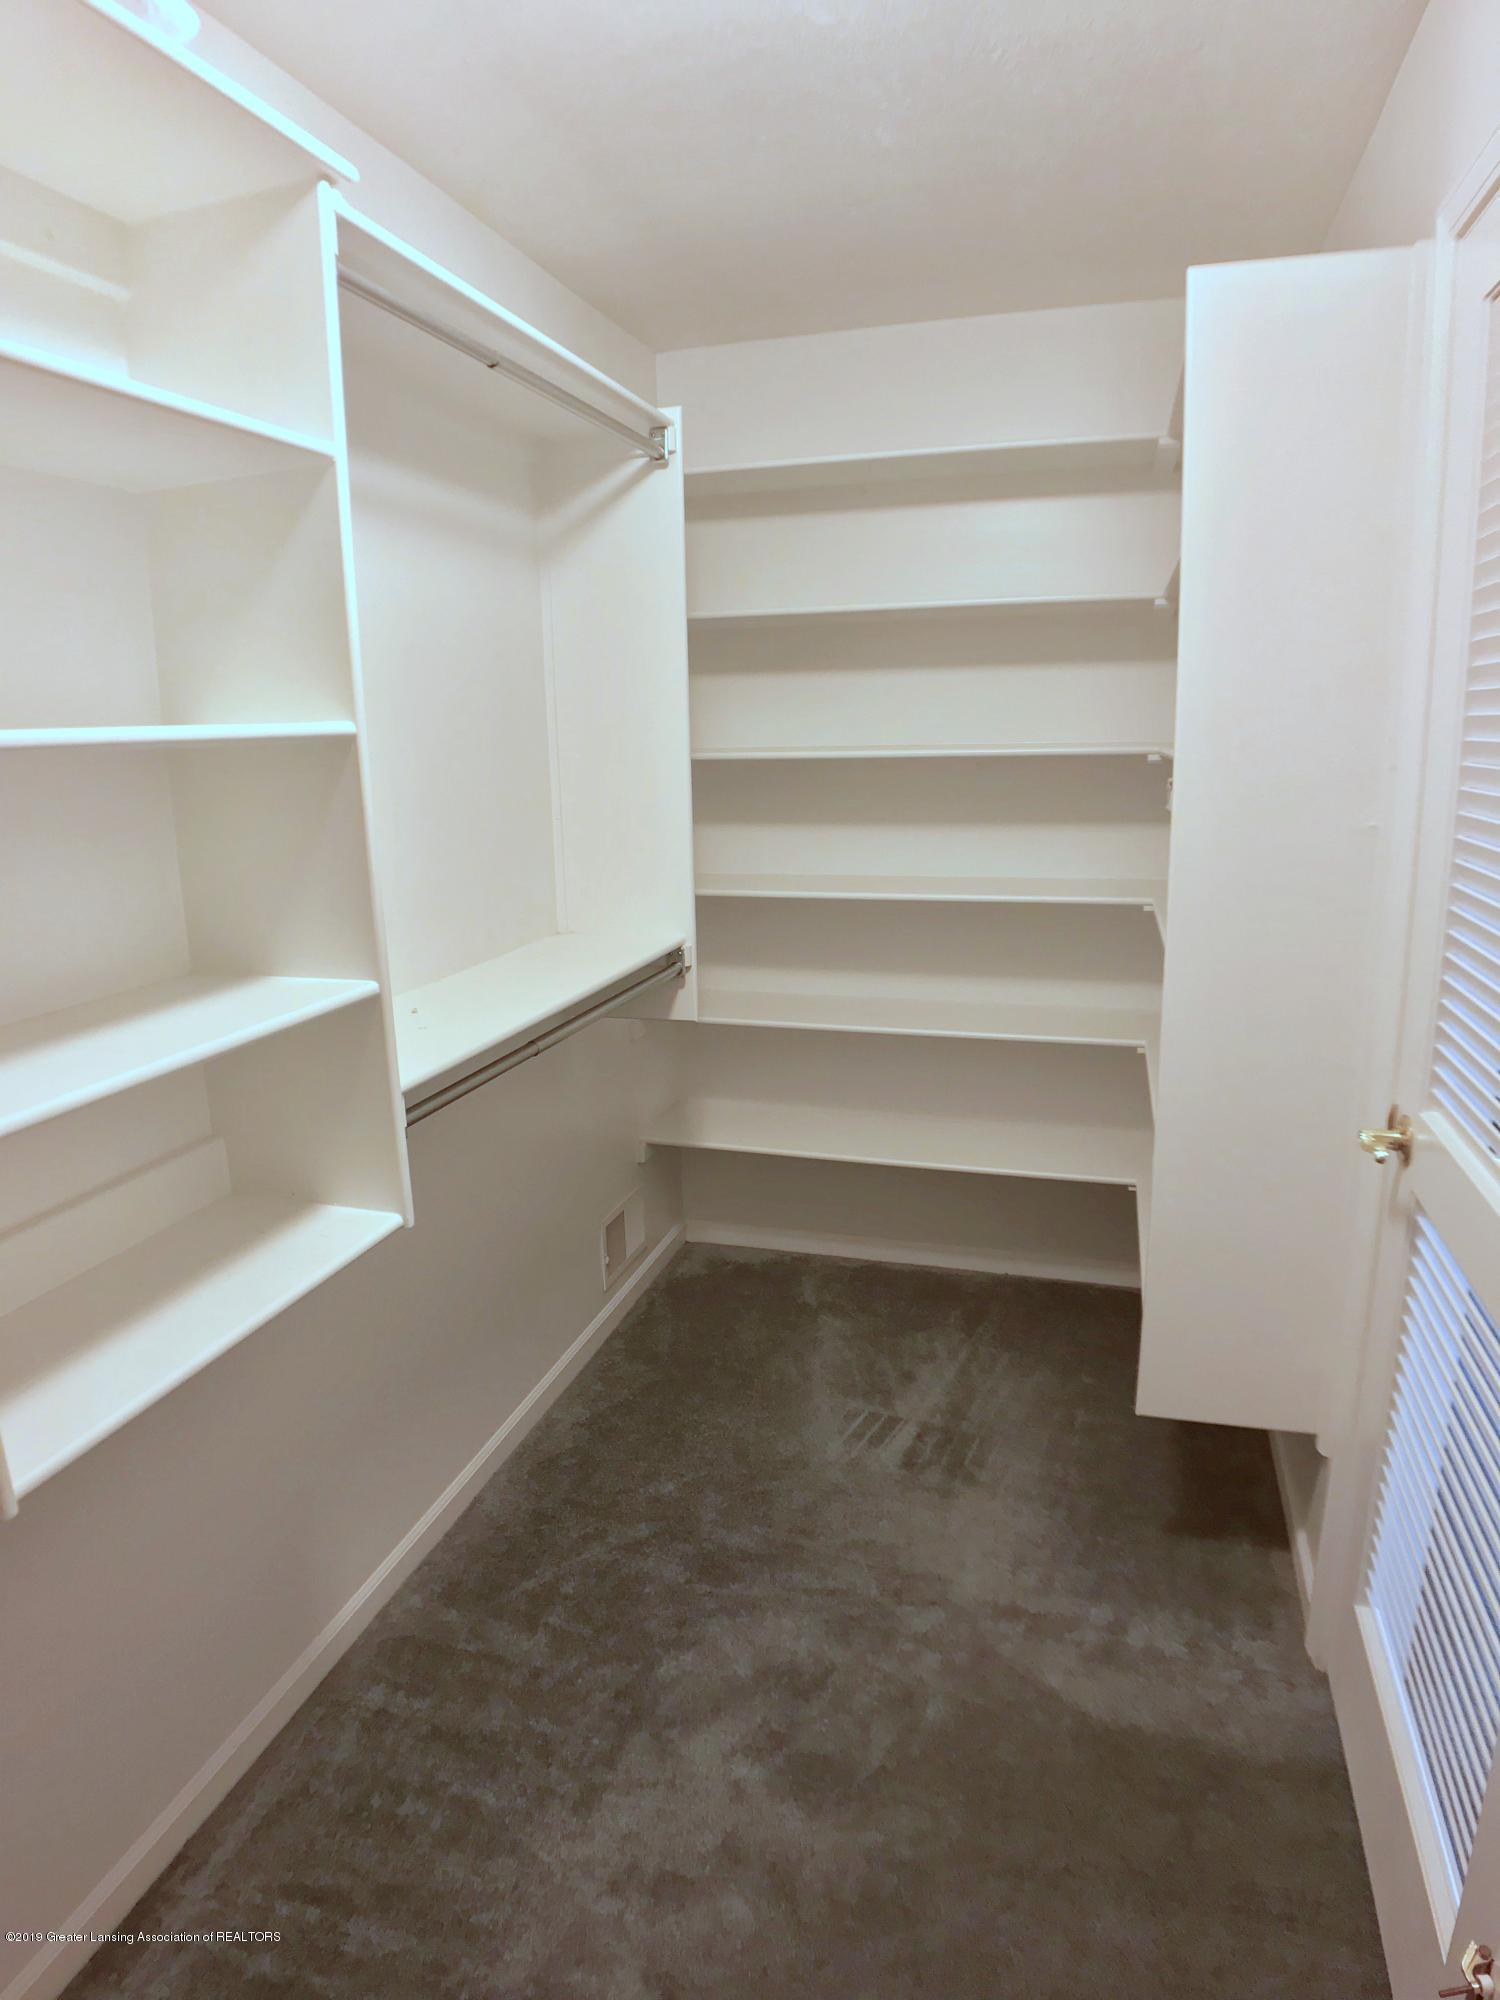 6430 Quail Ridge Ln - Second Unit Closet - 51